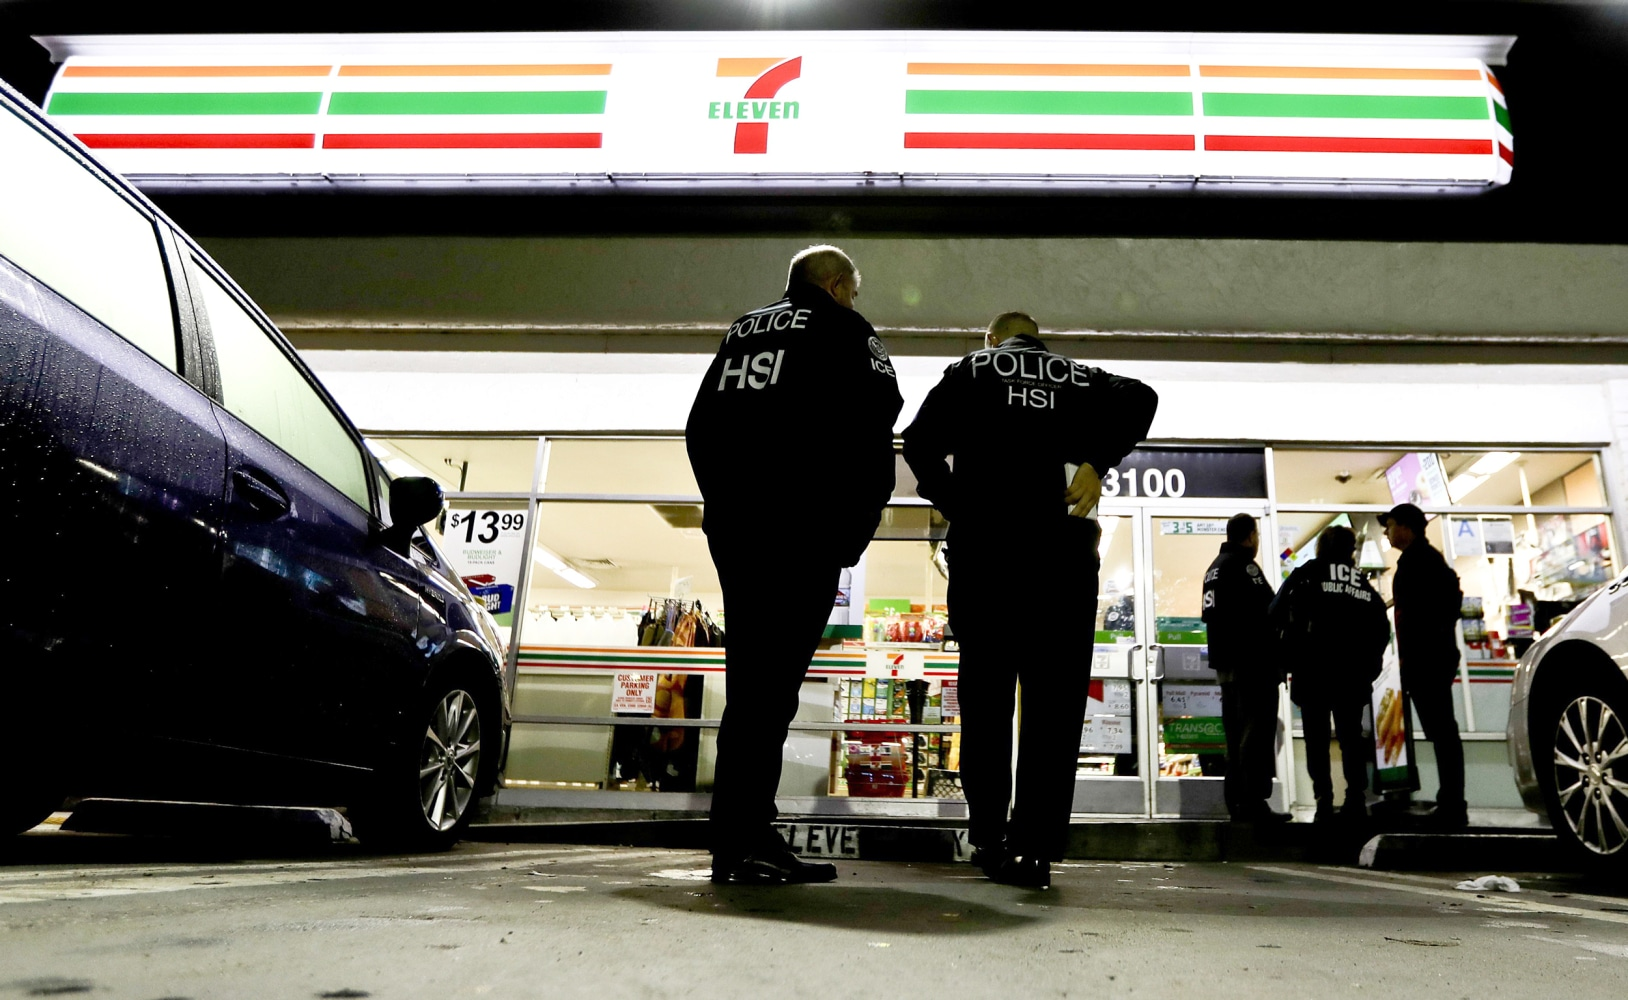 USA  officials raid 7-Eleven stores amid crackdown on illegal